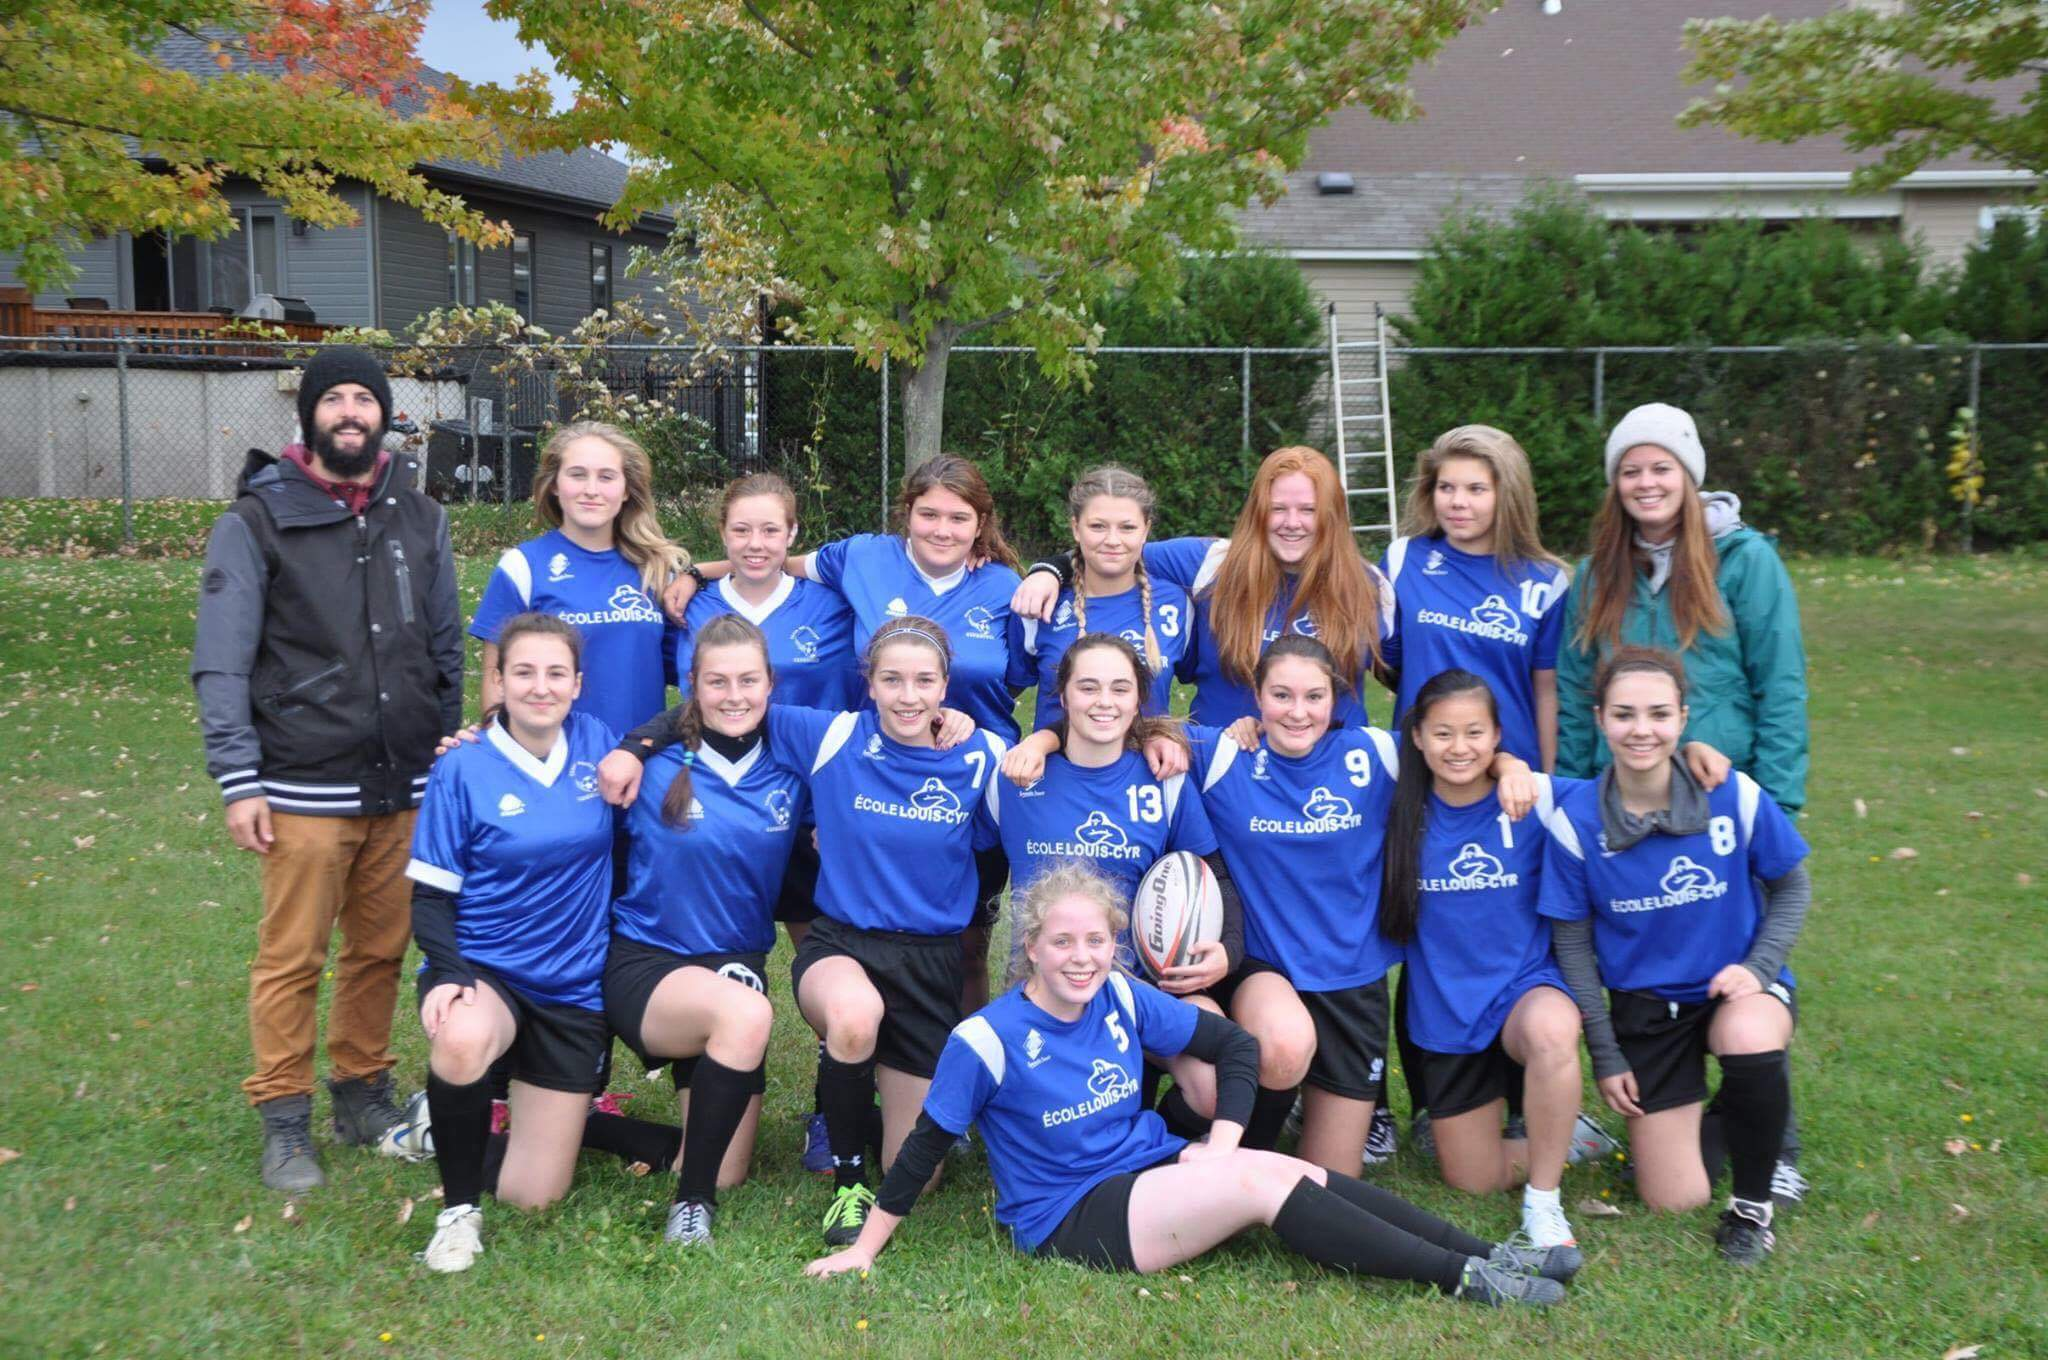 Bougeons Louis-Cyr Rugby 04